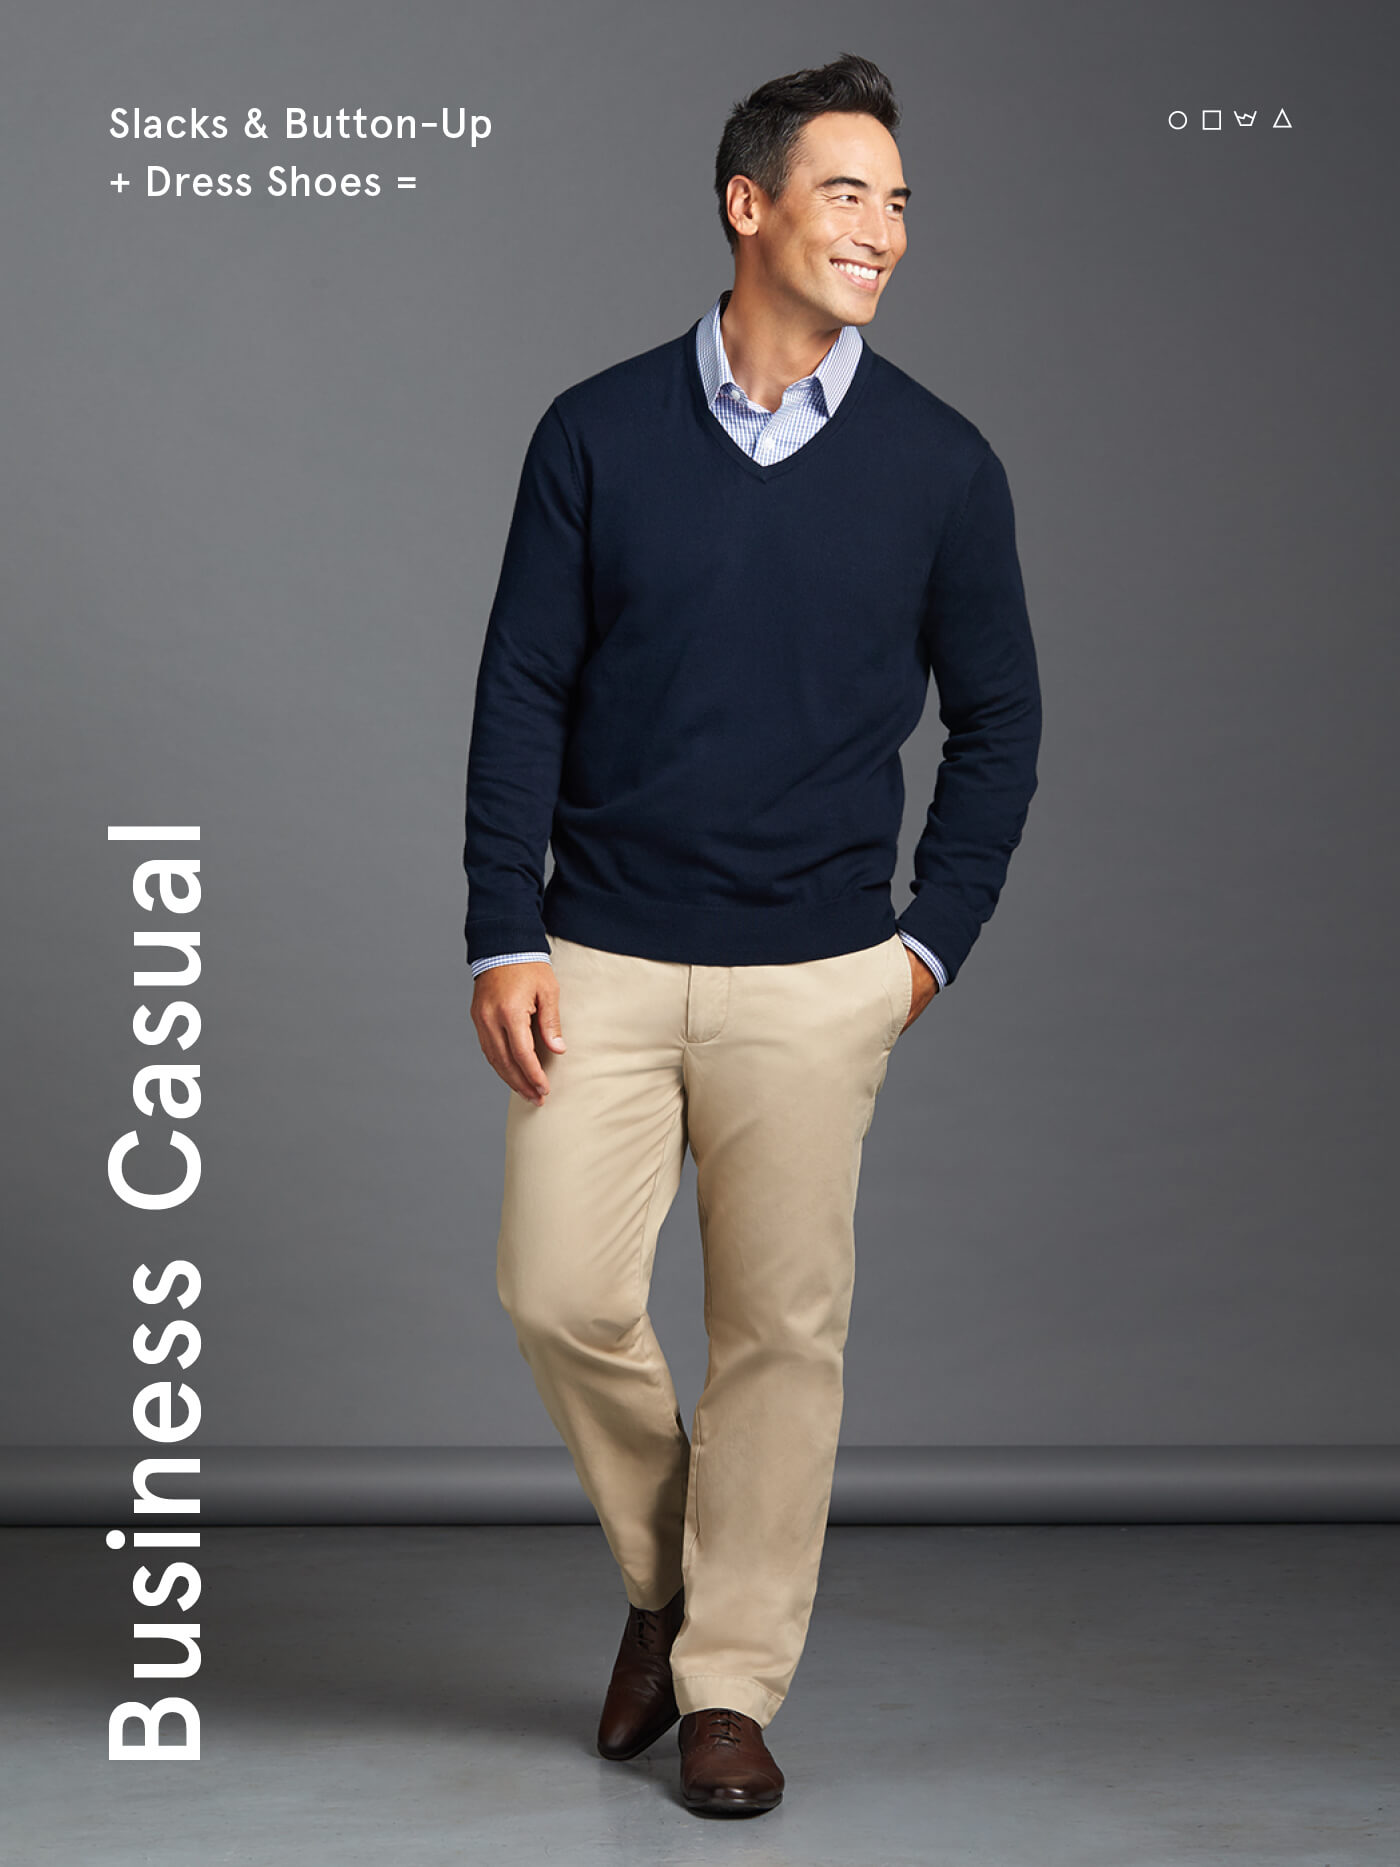 8ed2550e6d9 what is business casual for men  slack and a button-up with dress shoes